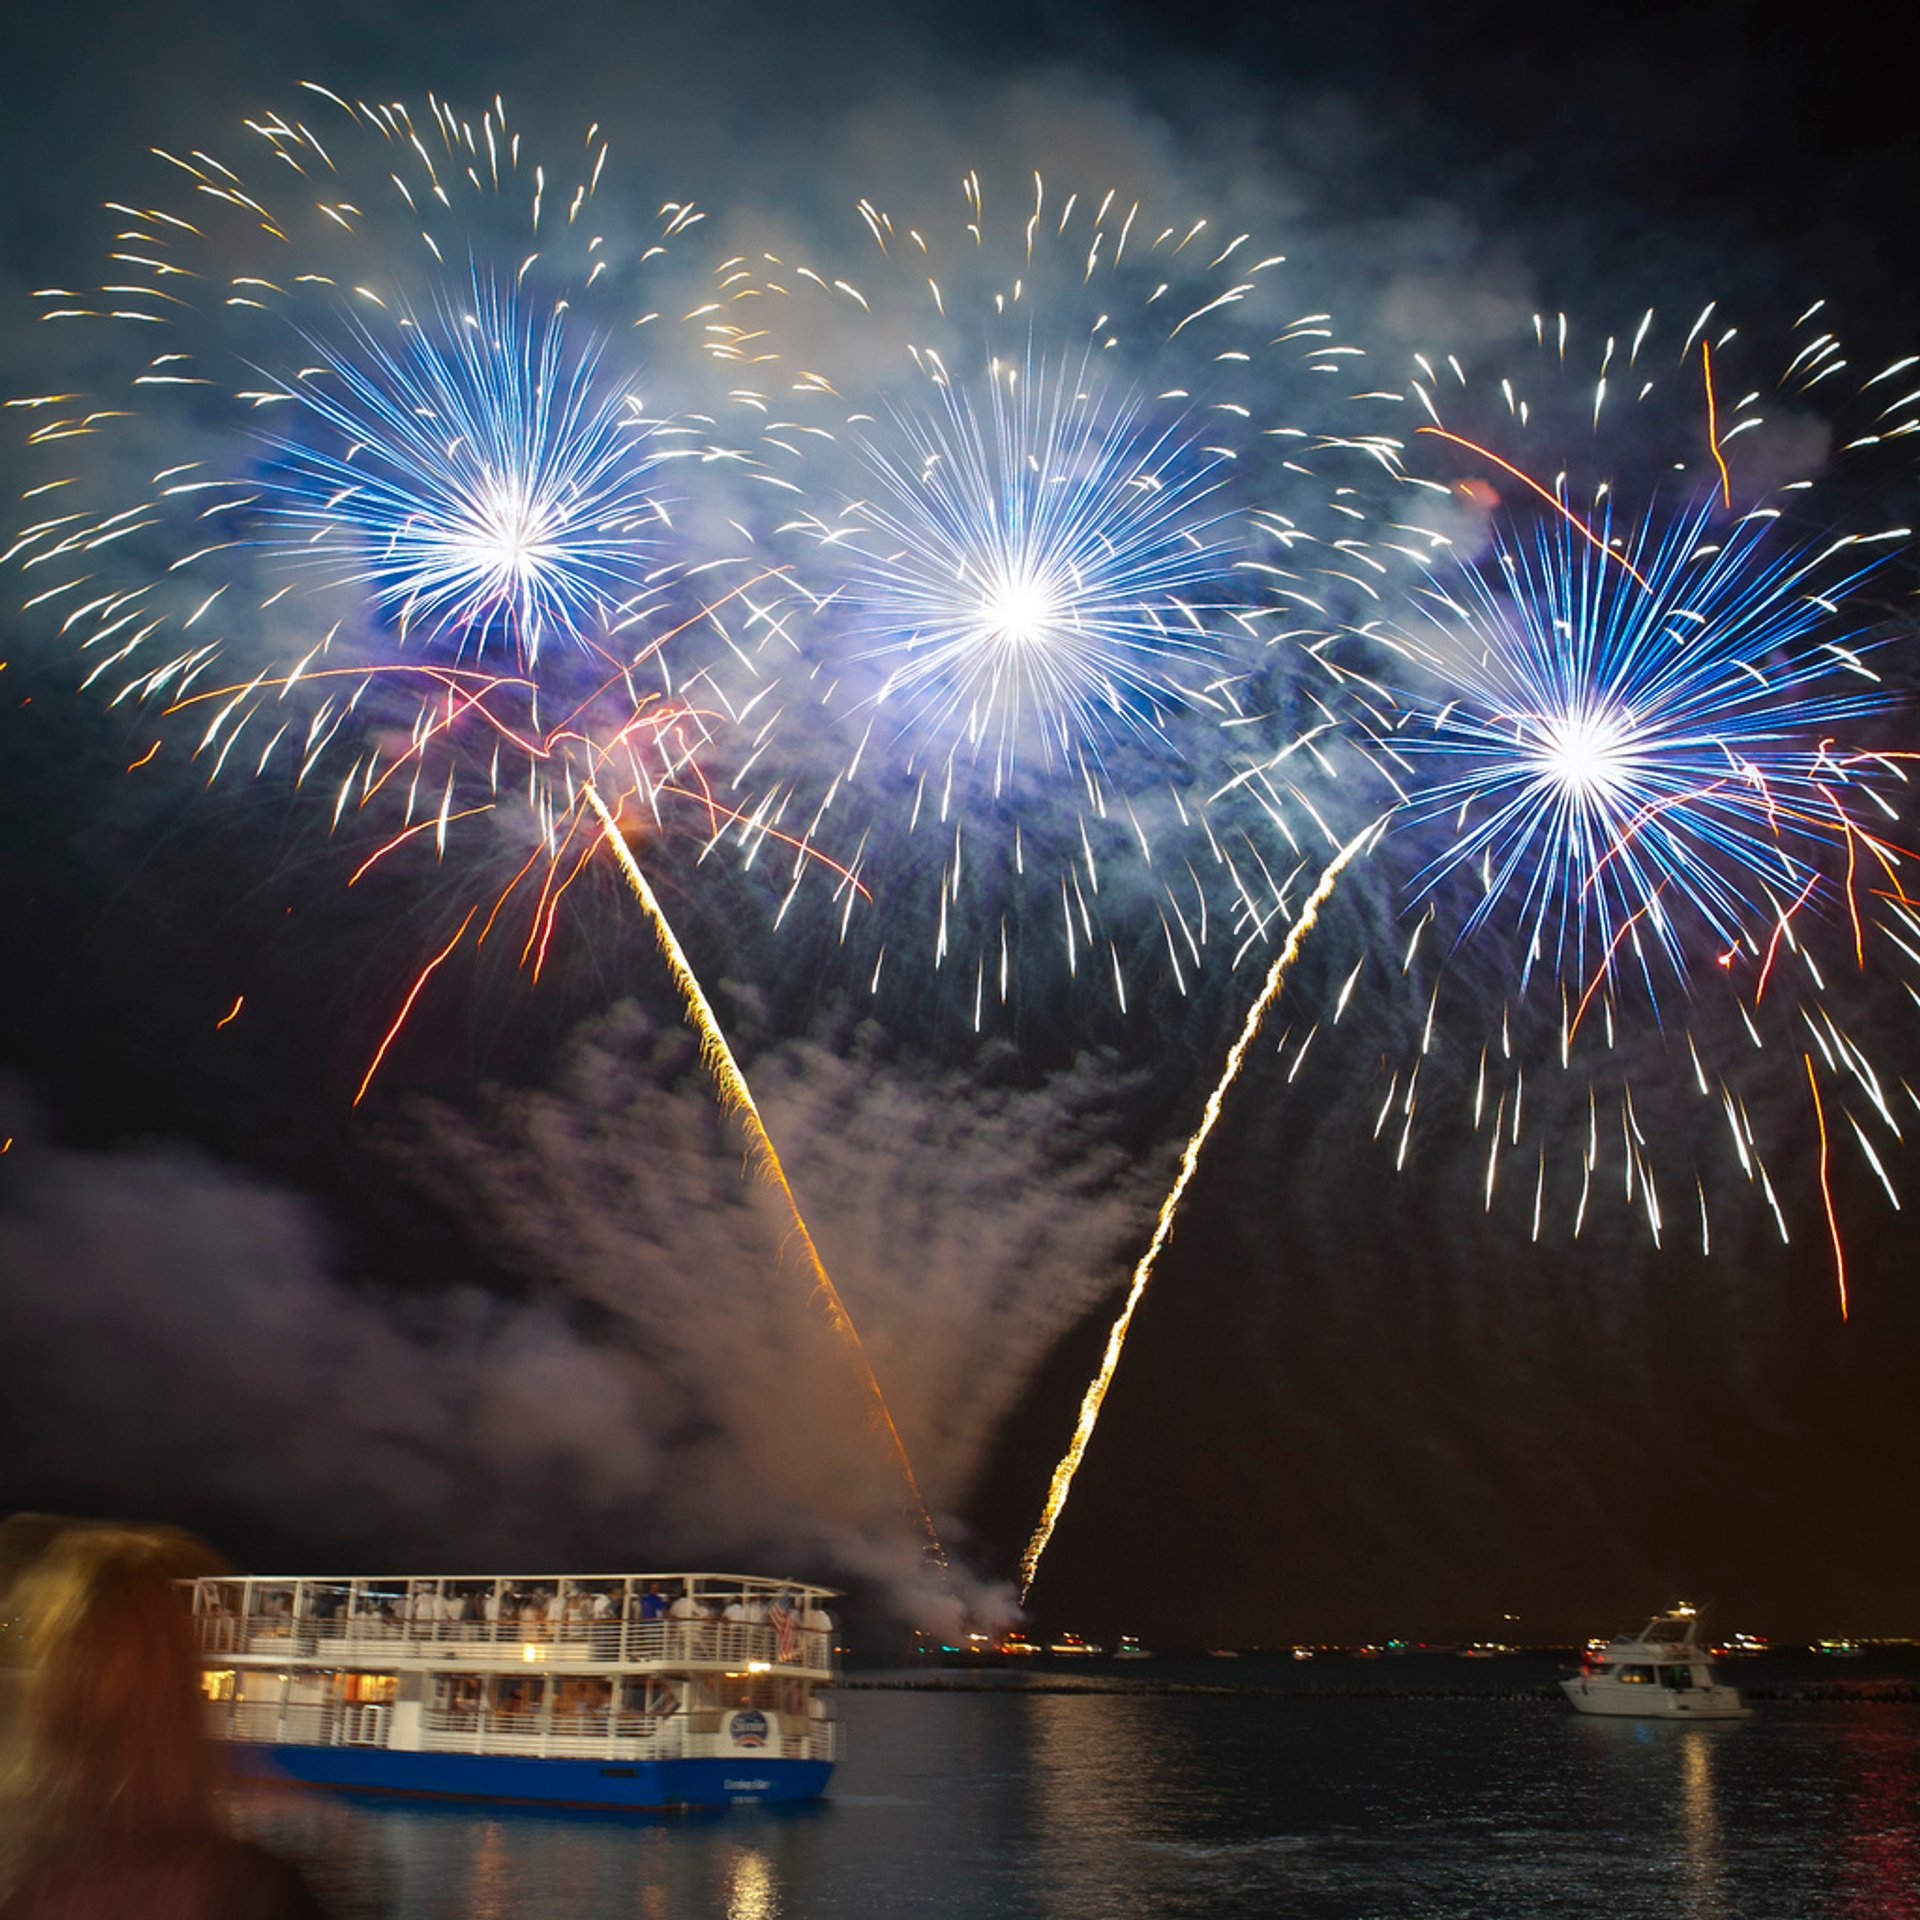 Summer Fireworks at Navy Pier  in Chicago - Best Season 2020